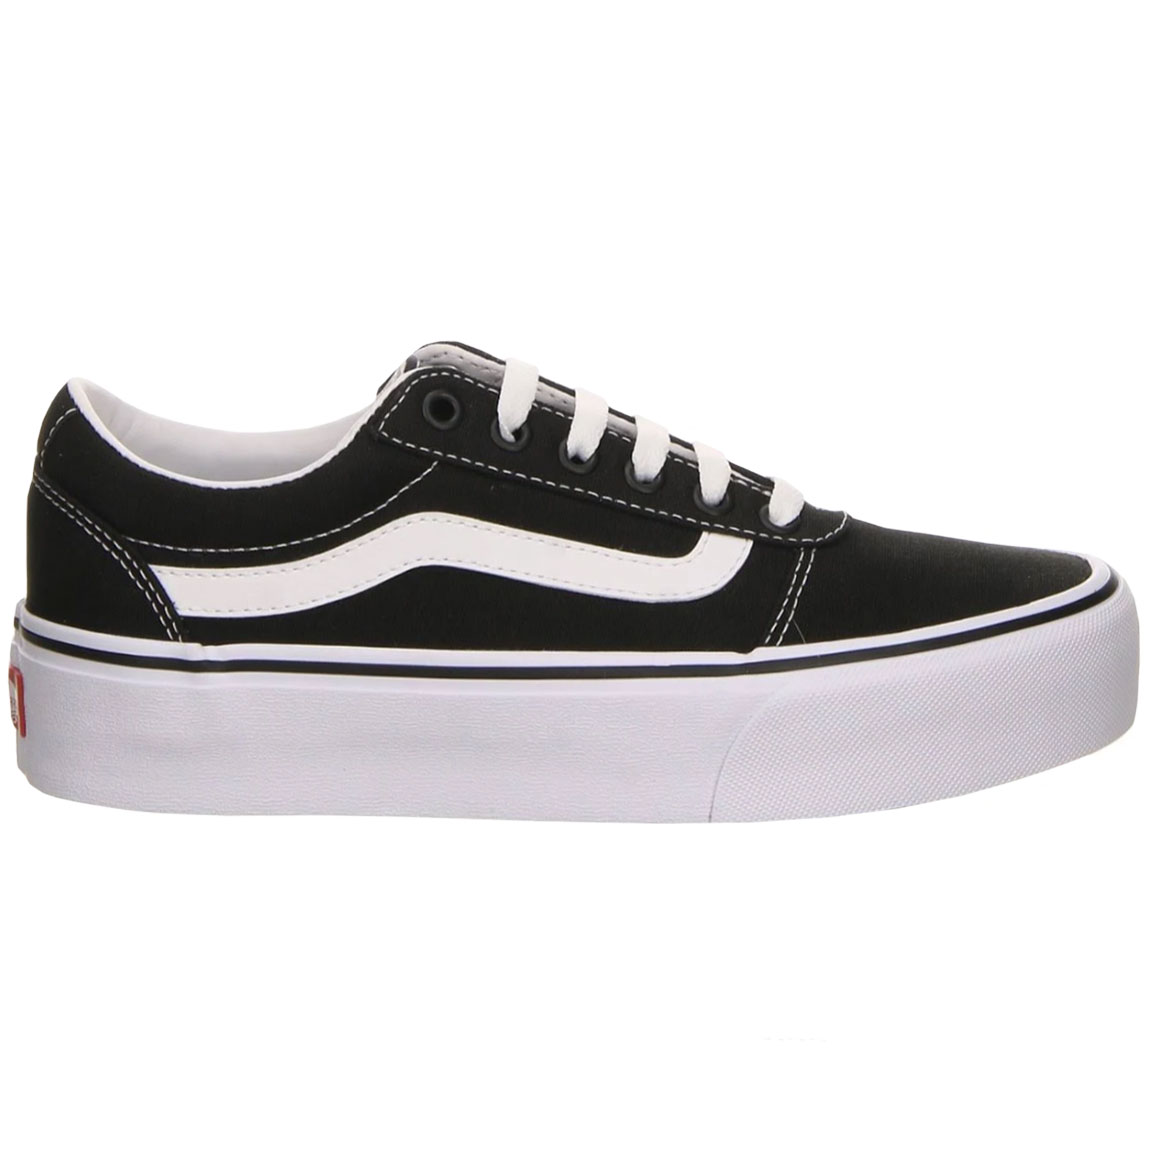 Vans Damen Ward Canvas Sneaker